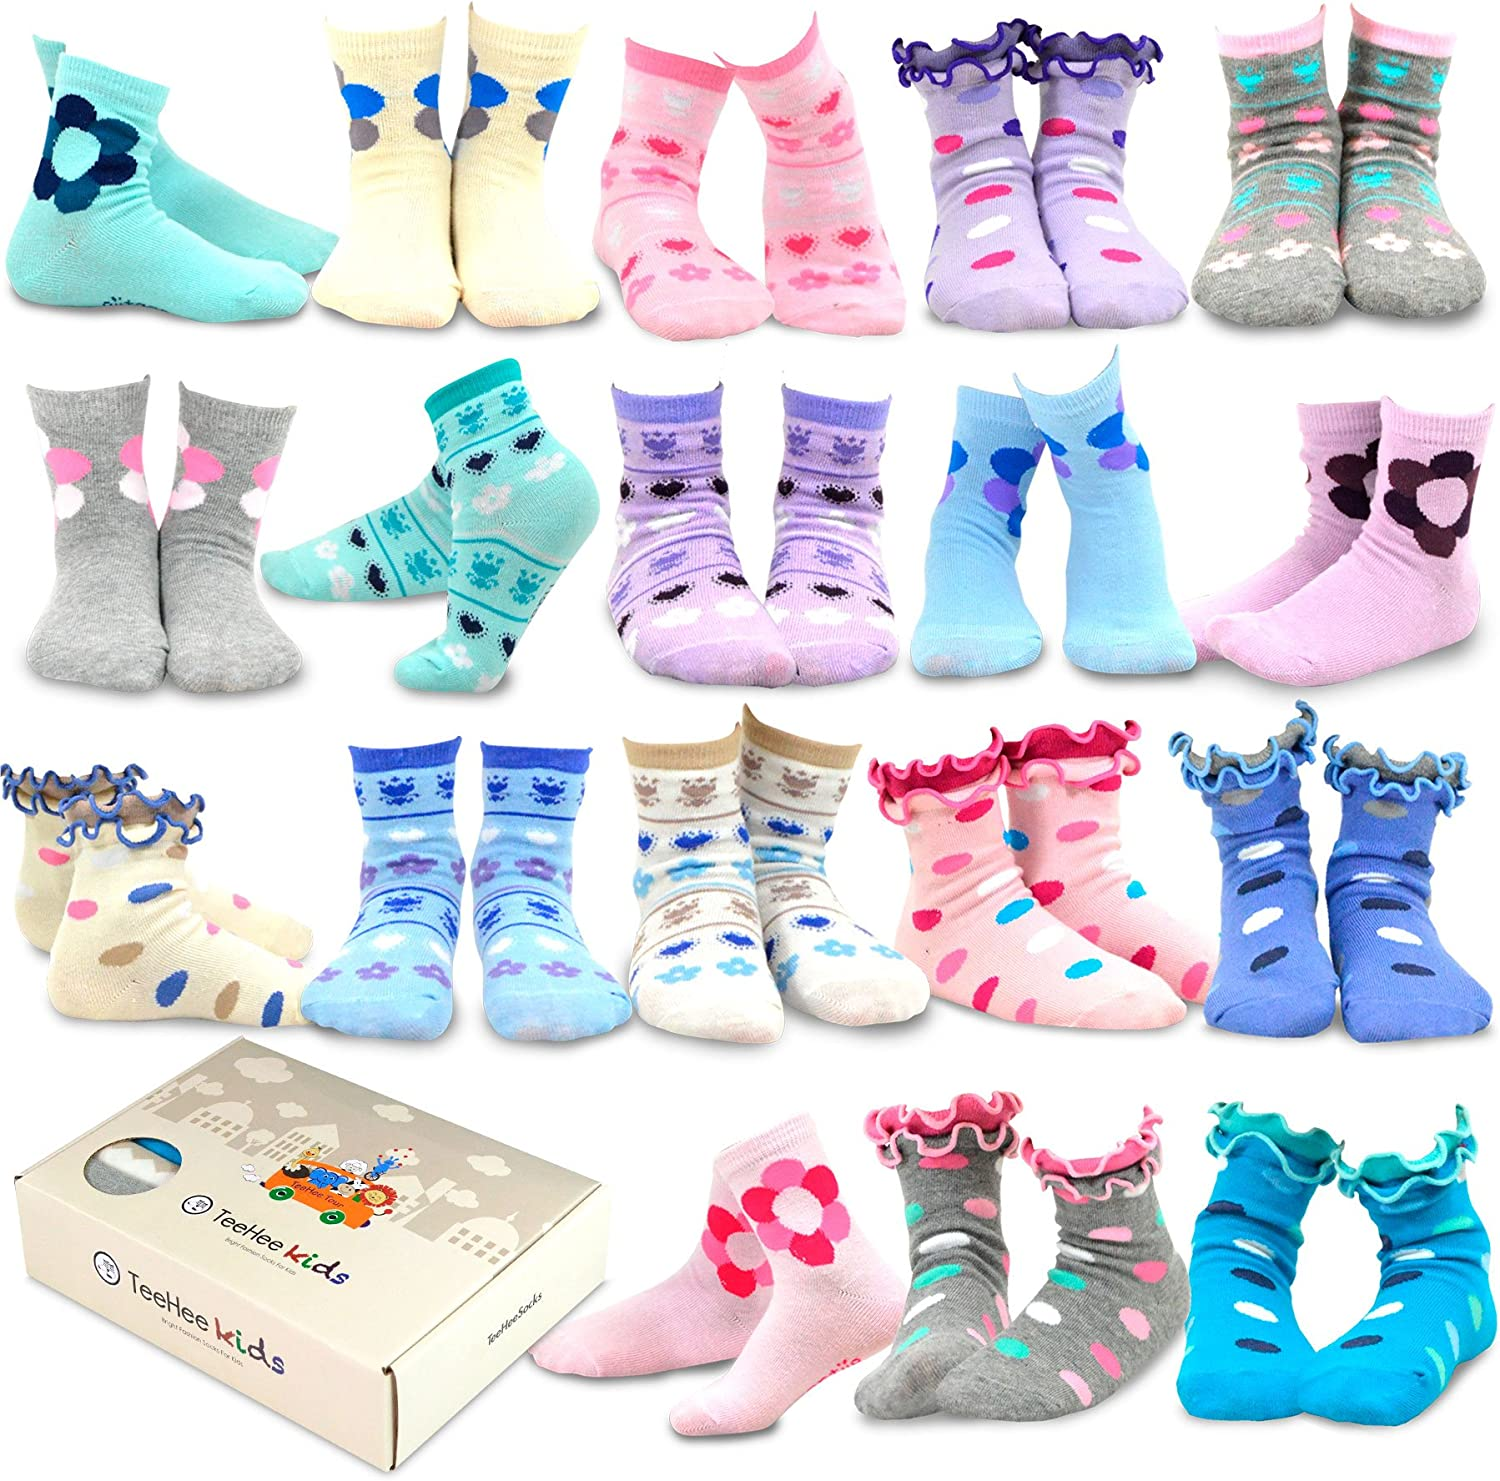 TeeHee Little Girls and Toddler Cute Novelty and Fashion Cotton Crew Socks 18 Pair Pack Gift Box